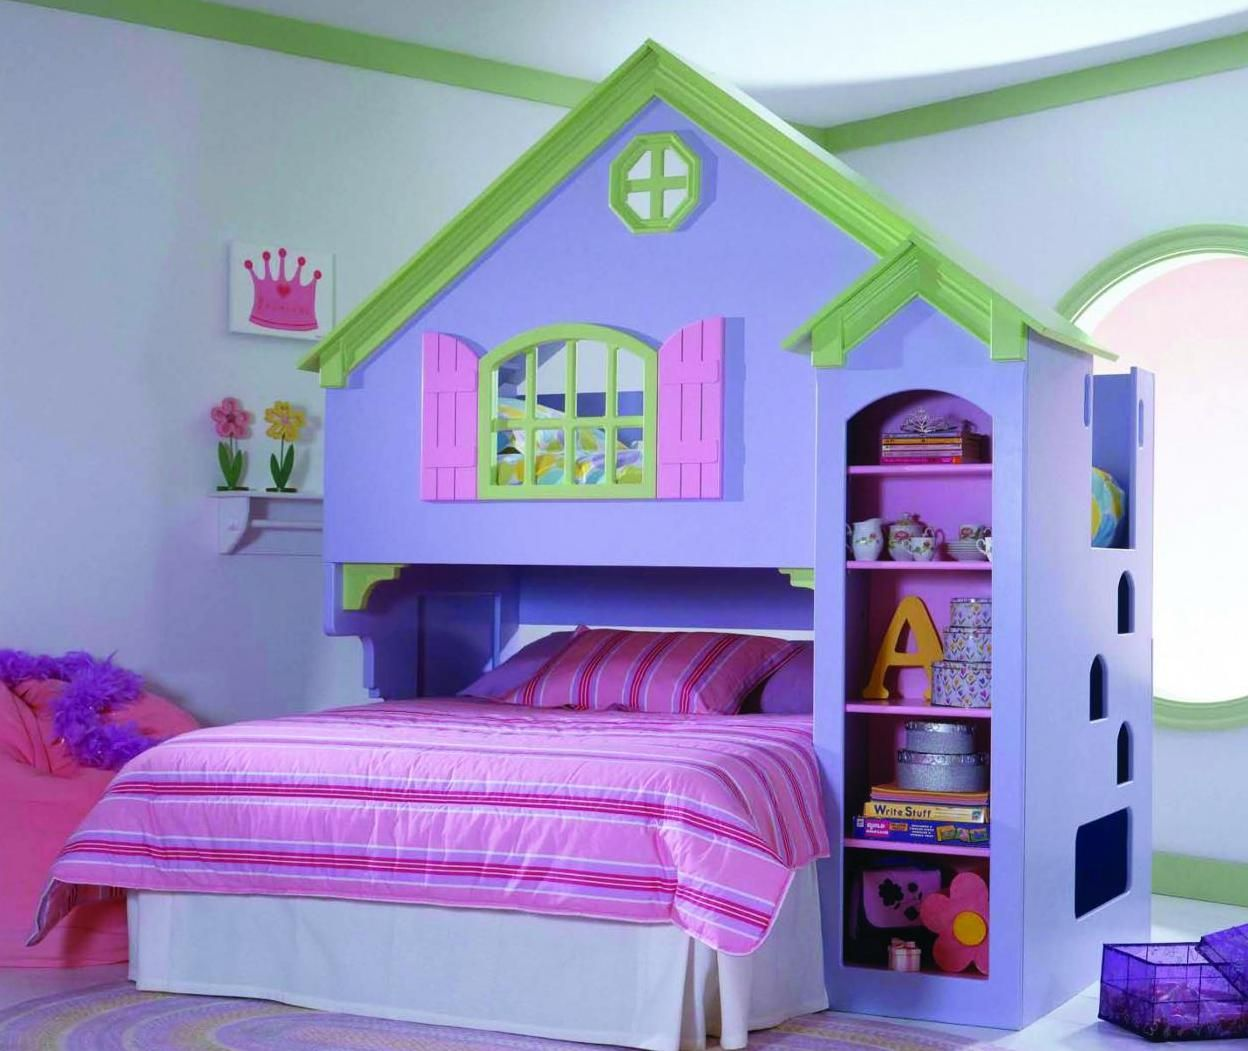 Attractive Kids Bedroom Sets Style Visualized With House Shaped Bed ...